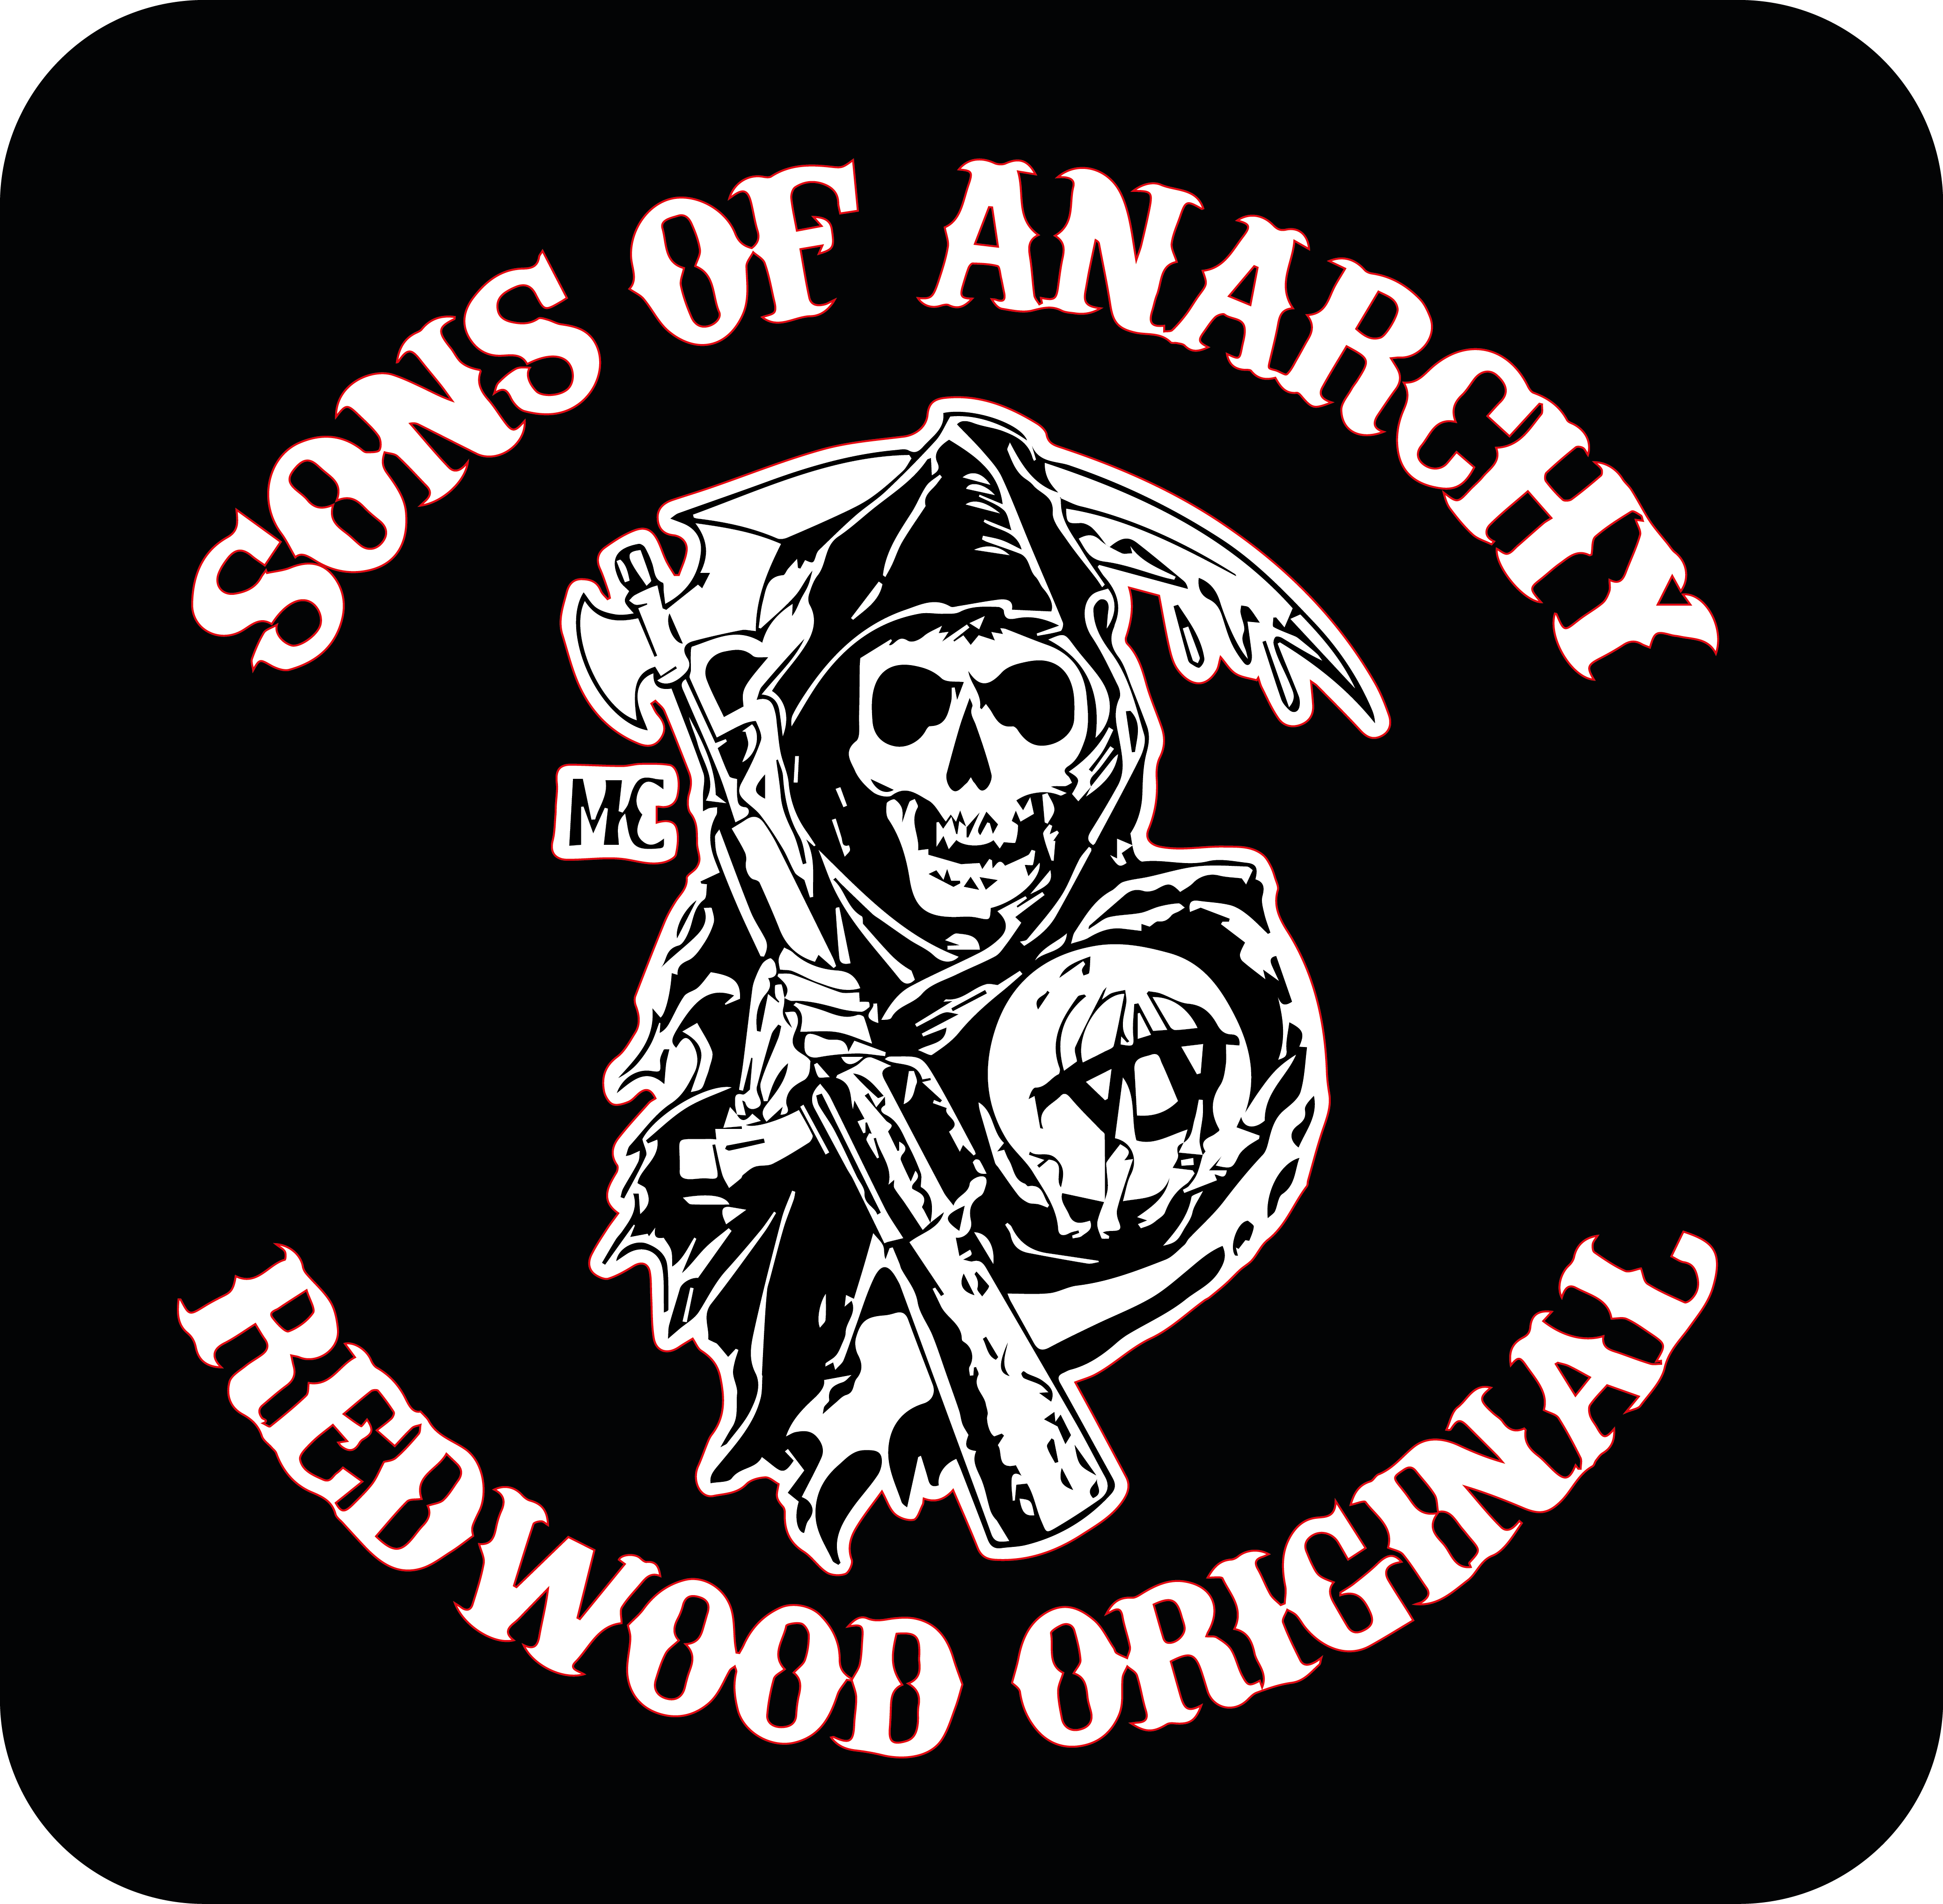 sons of anarchy print and cutt by pmattiasp on deviantart rh pmattiasp deviantart com Sons of Anarchy Symbol Sons of Anarchy Symbol